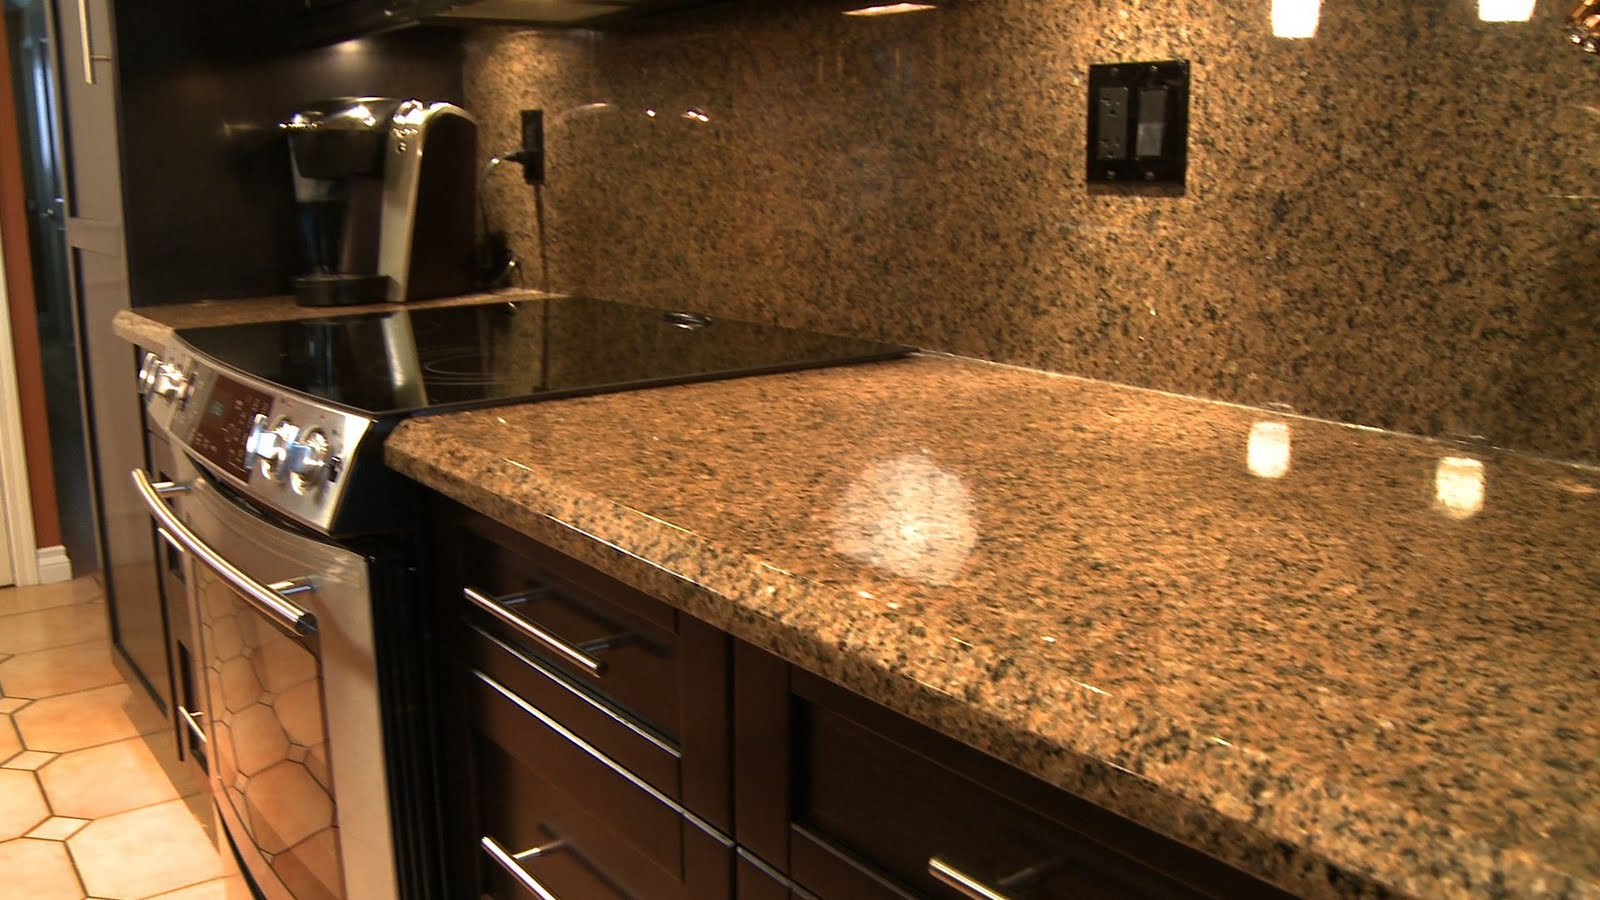 46 Granite Wallpaper For Countertops On Wallpapersafari